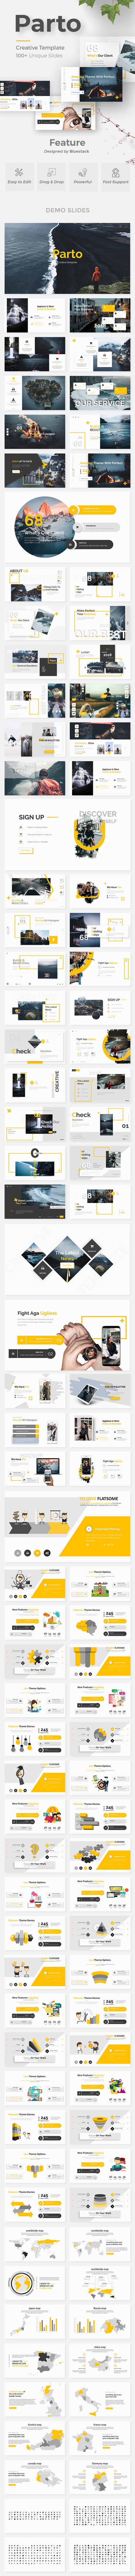 Parto Creative Powerpoint Template - Creative PowerPoint Templates